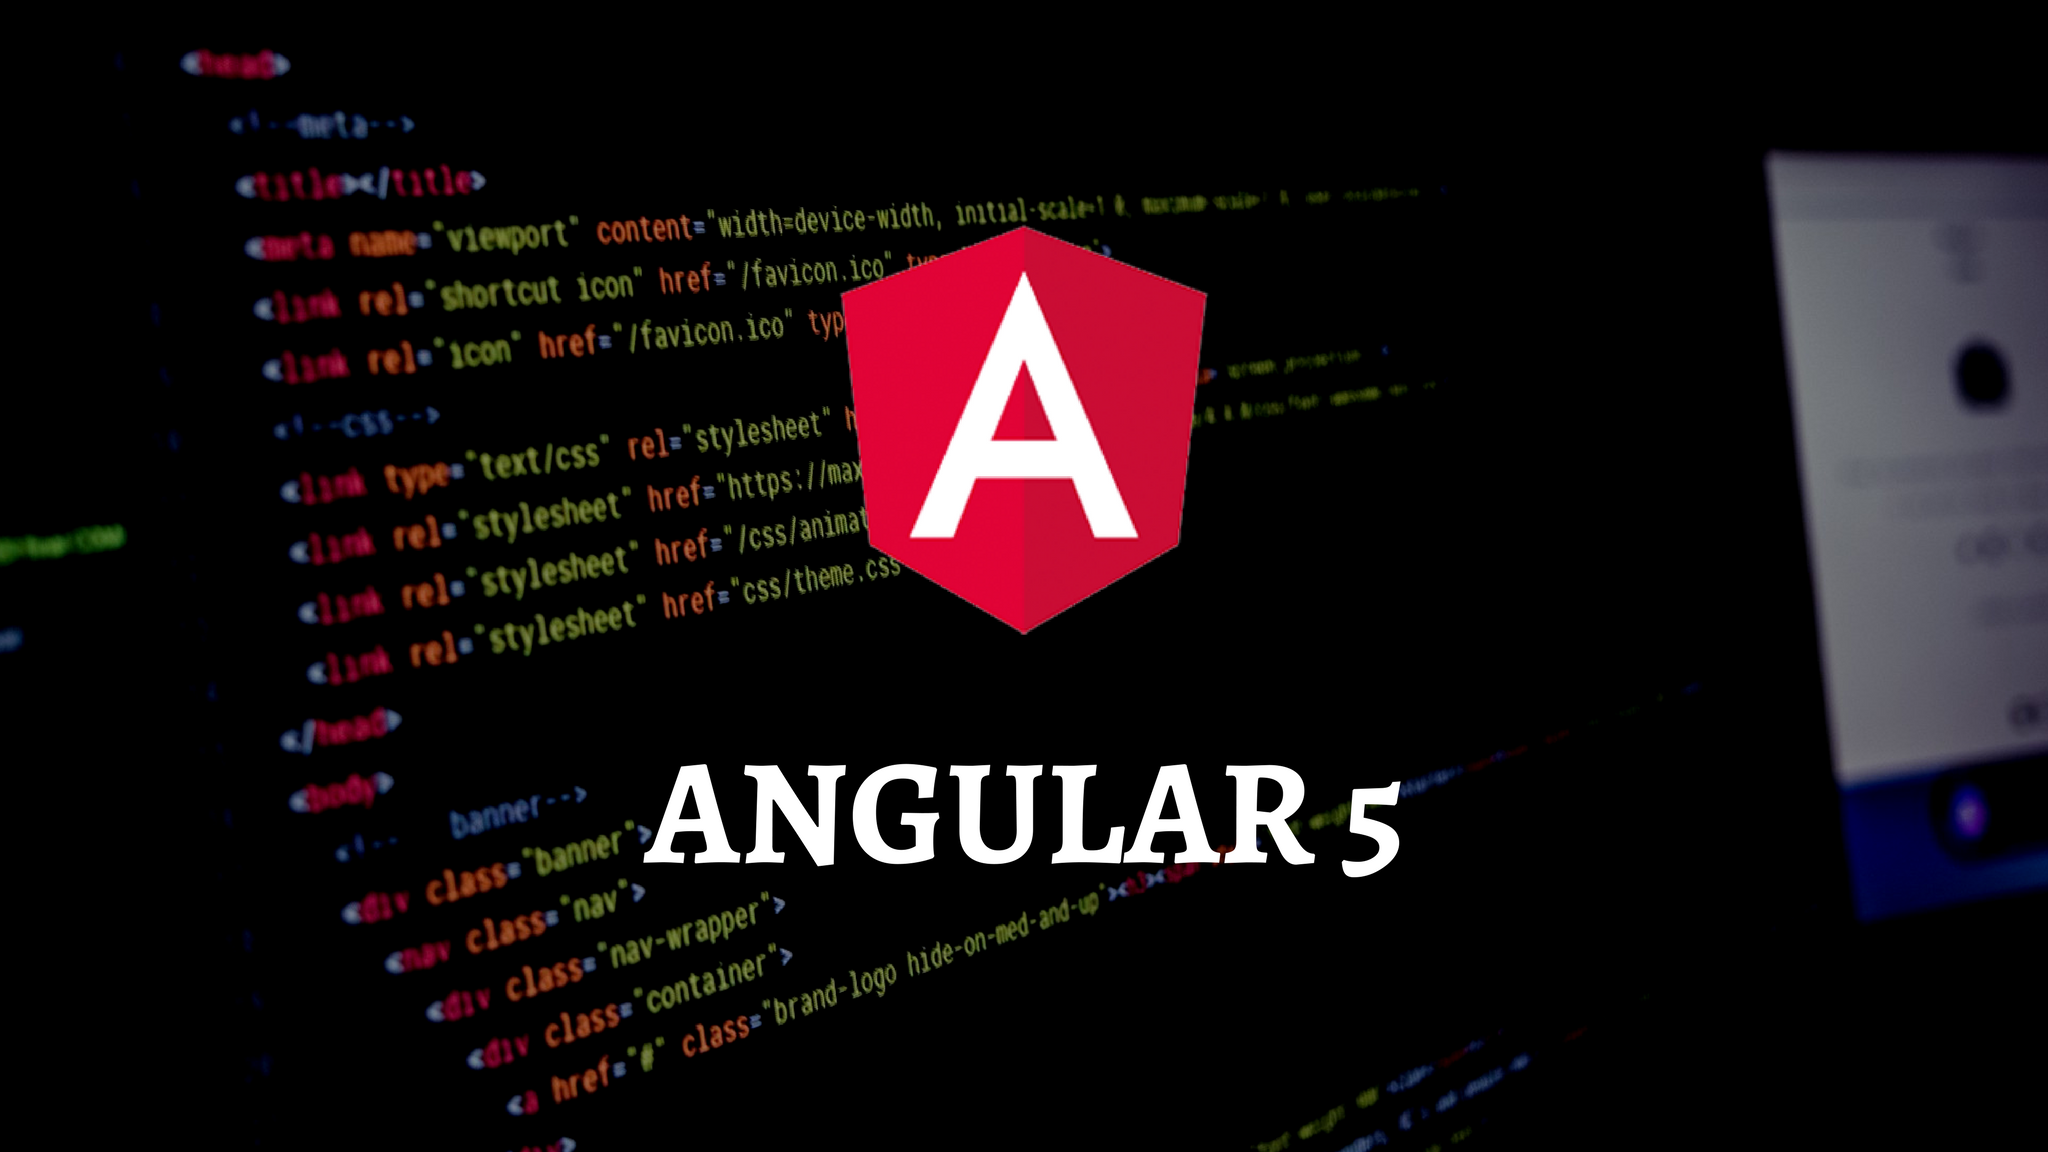 Angular 5 and jQuery DataTables ! - Apprendre le web avec